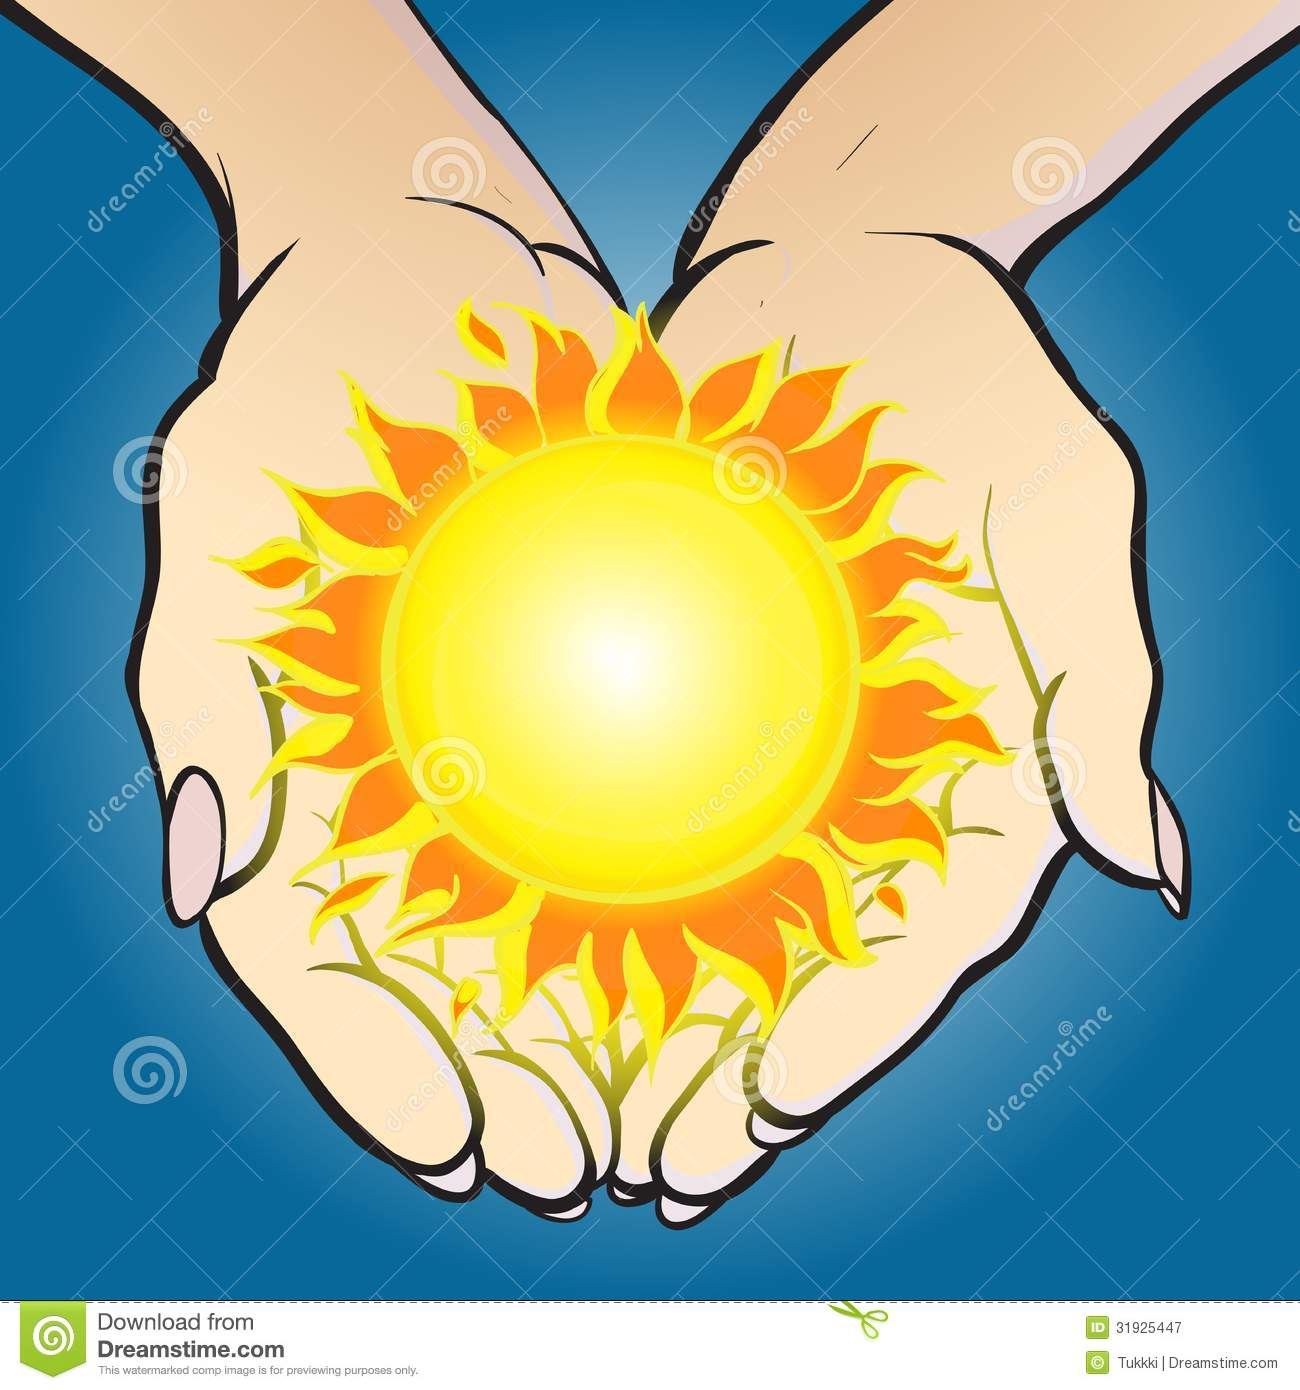 hands holding shining sun and giving it. Concept image of solar energy ...